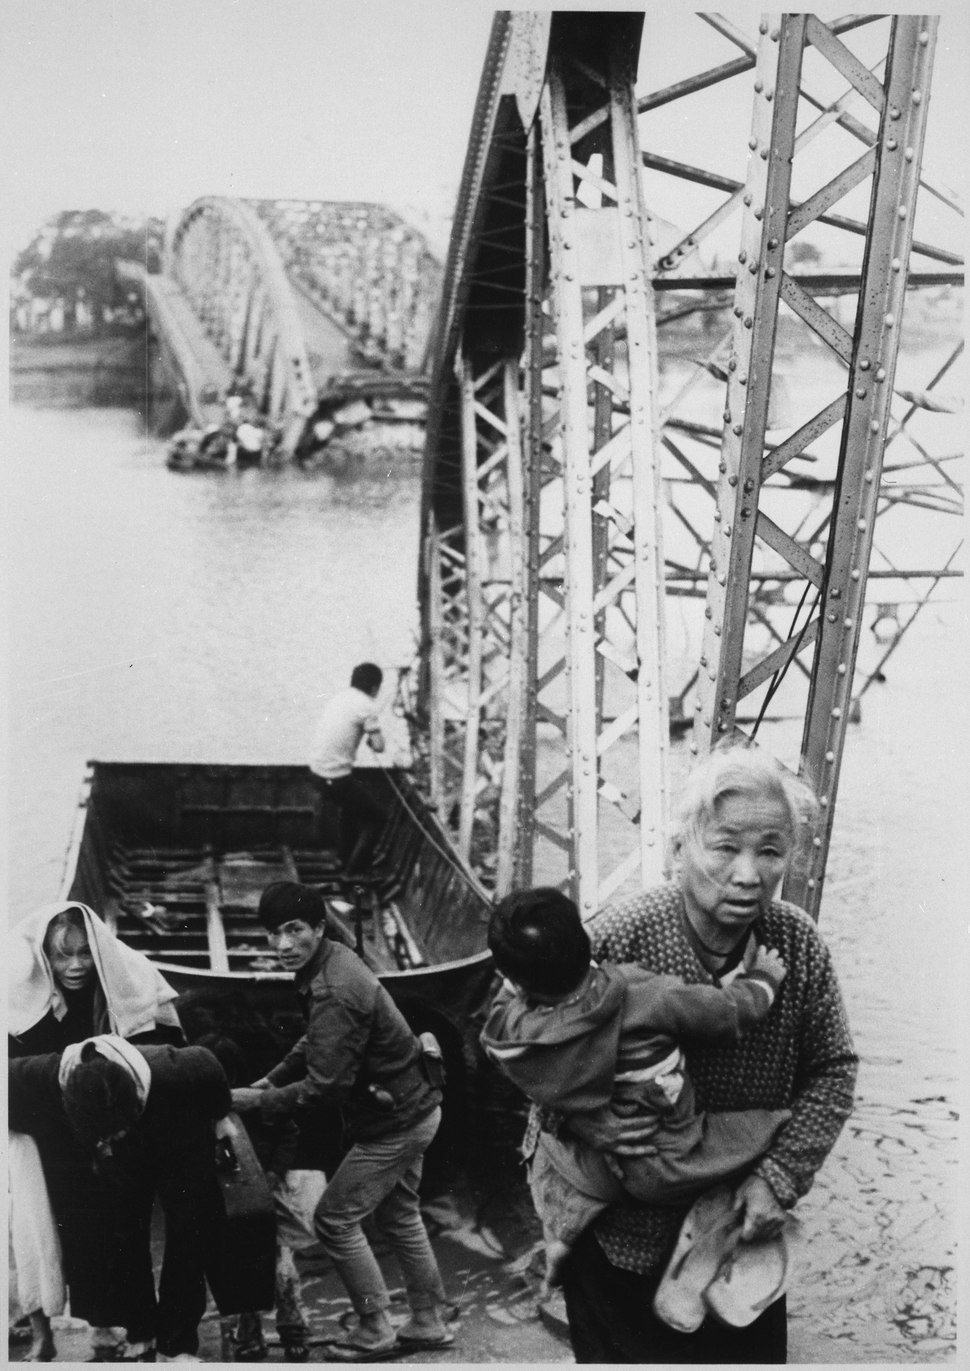 The old and the young flee Tet offensive fighting in Hue, managing to reach the south shore of the Perfume River despite - NARA - 541870